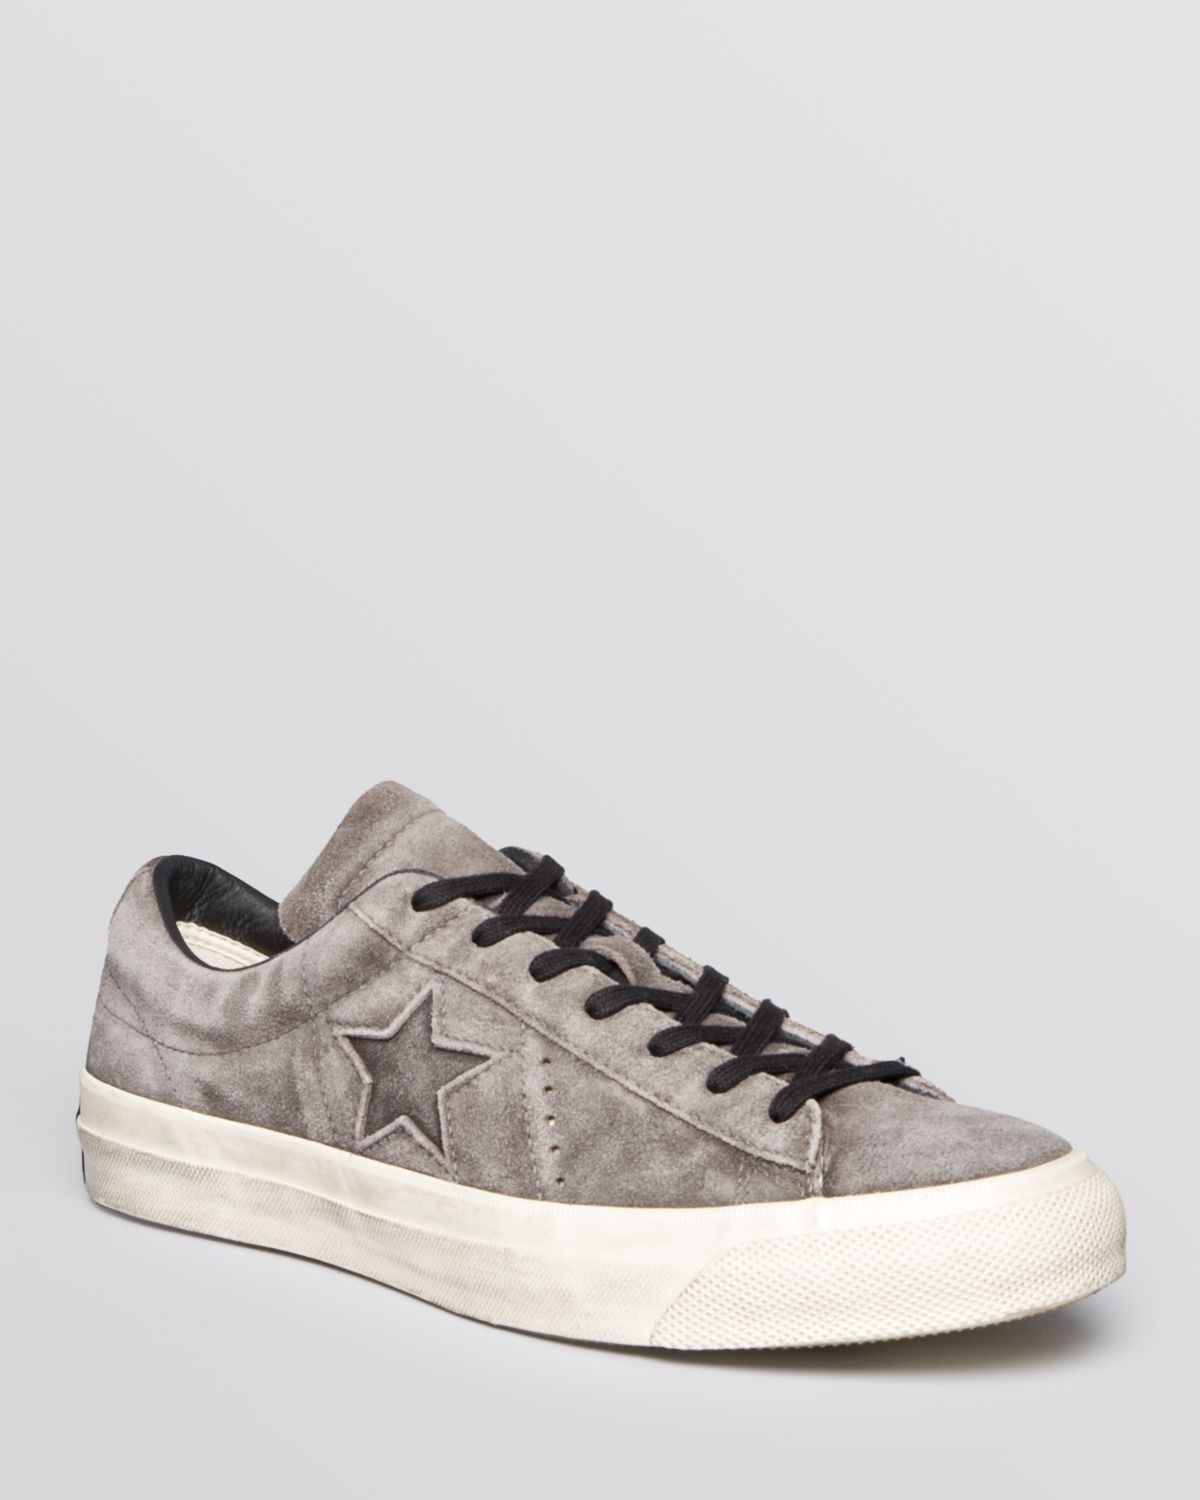 Converse One Star Classic Suede Low Top Shoes